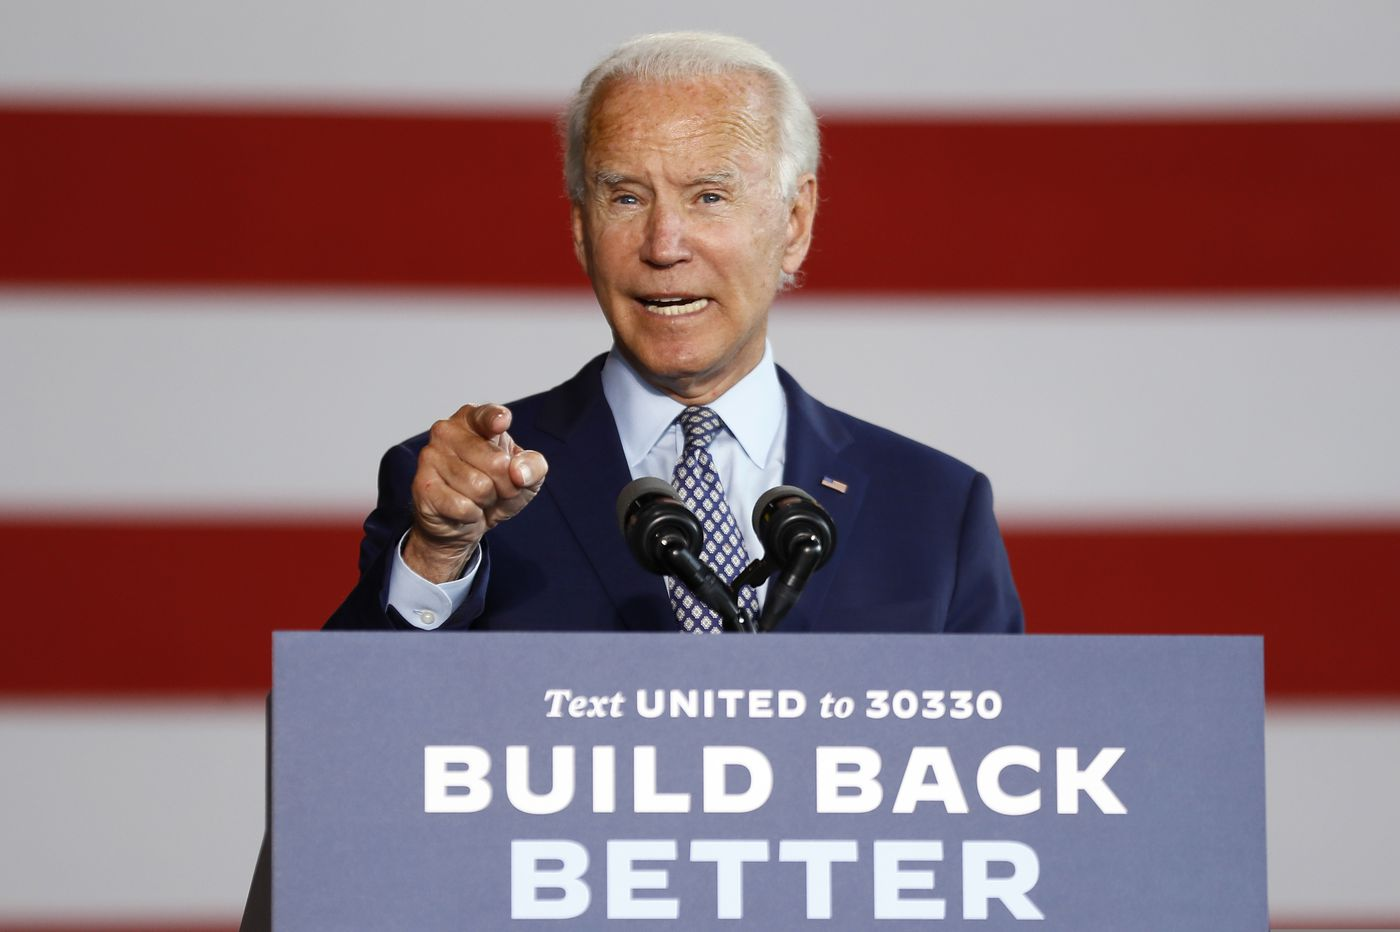 Biden said Pa. sent more Black troops to fight for the Union during the Civil War than any other state. Is that true?